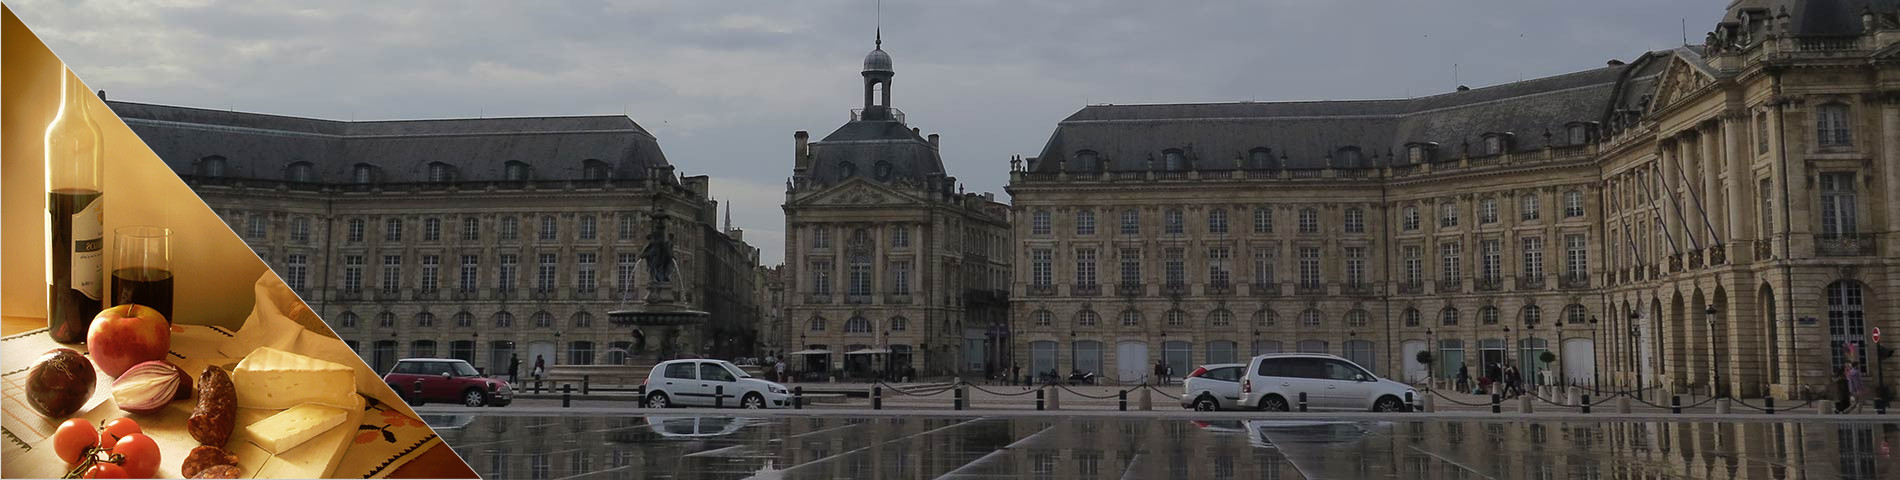 Bordeaux - Français & Culture